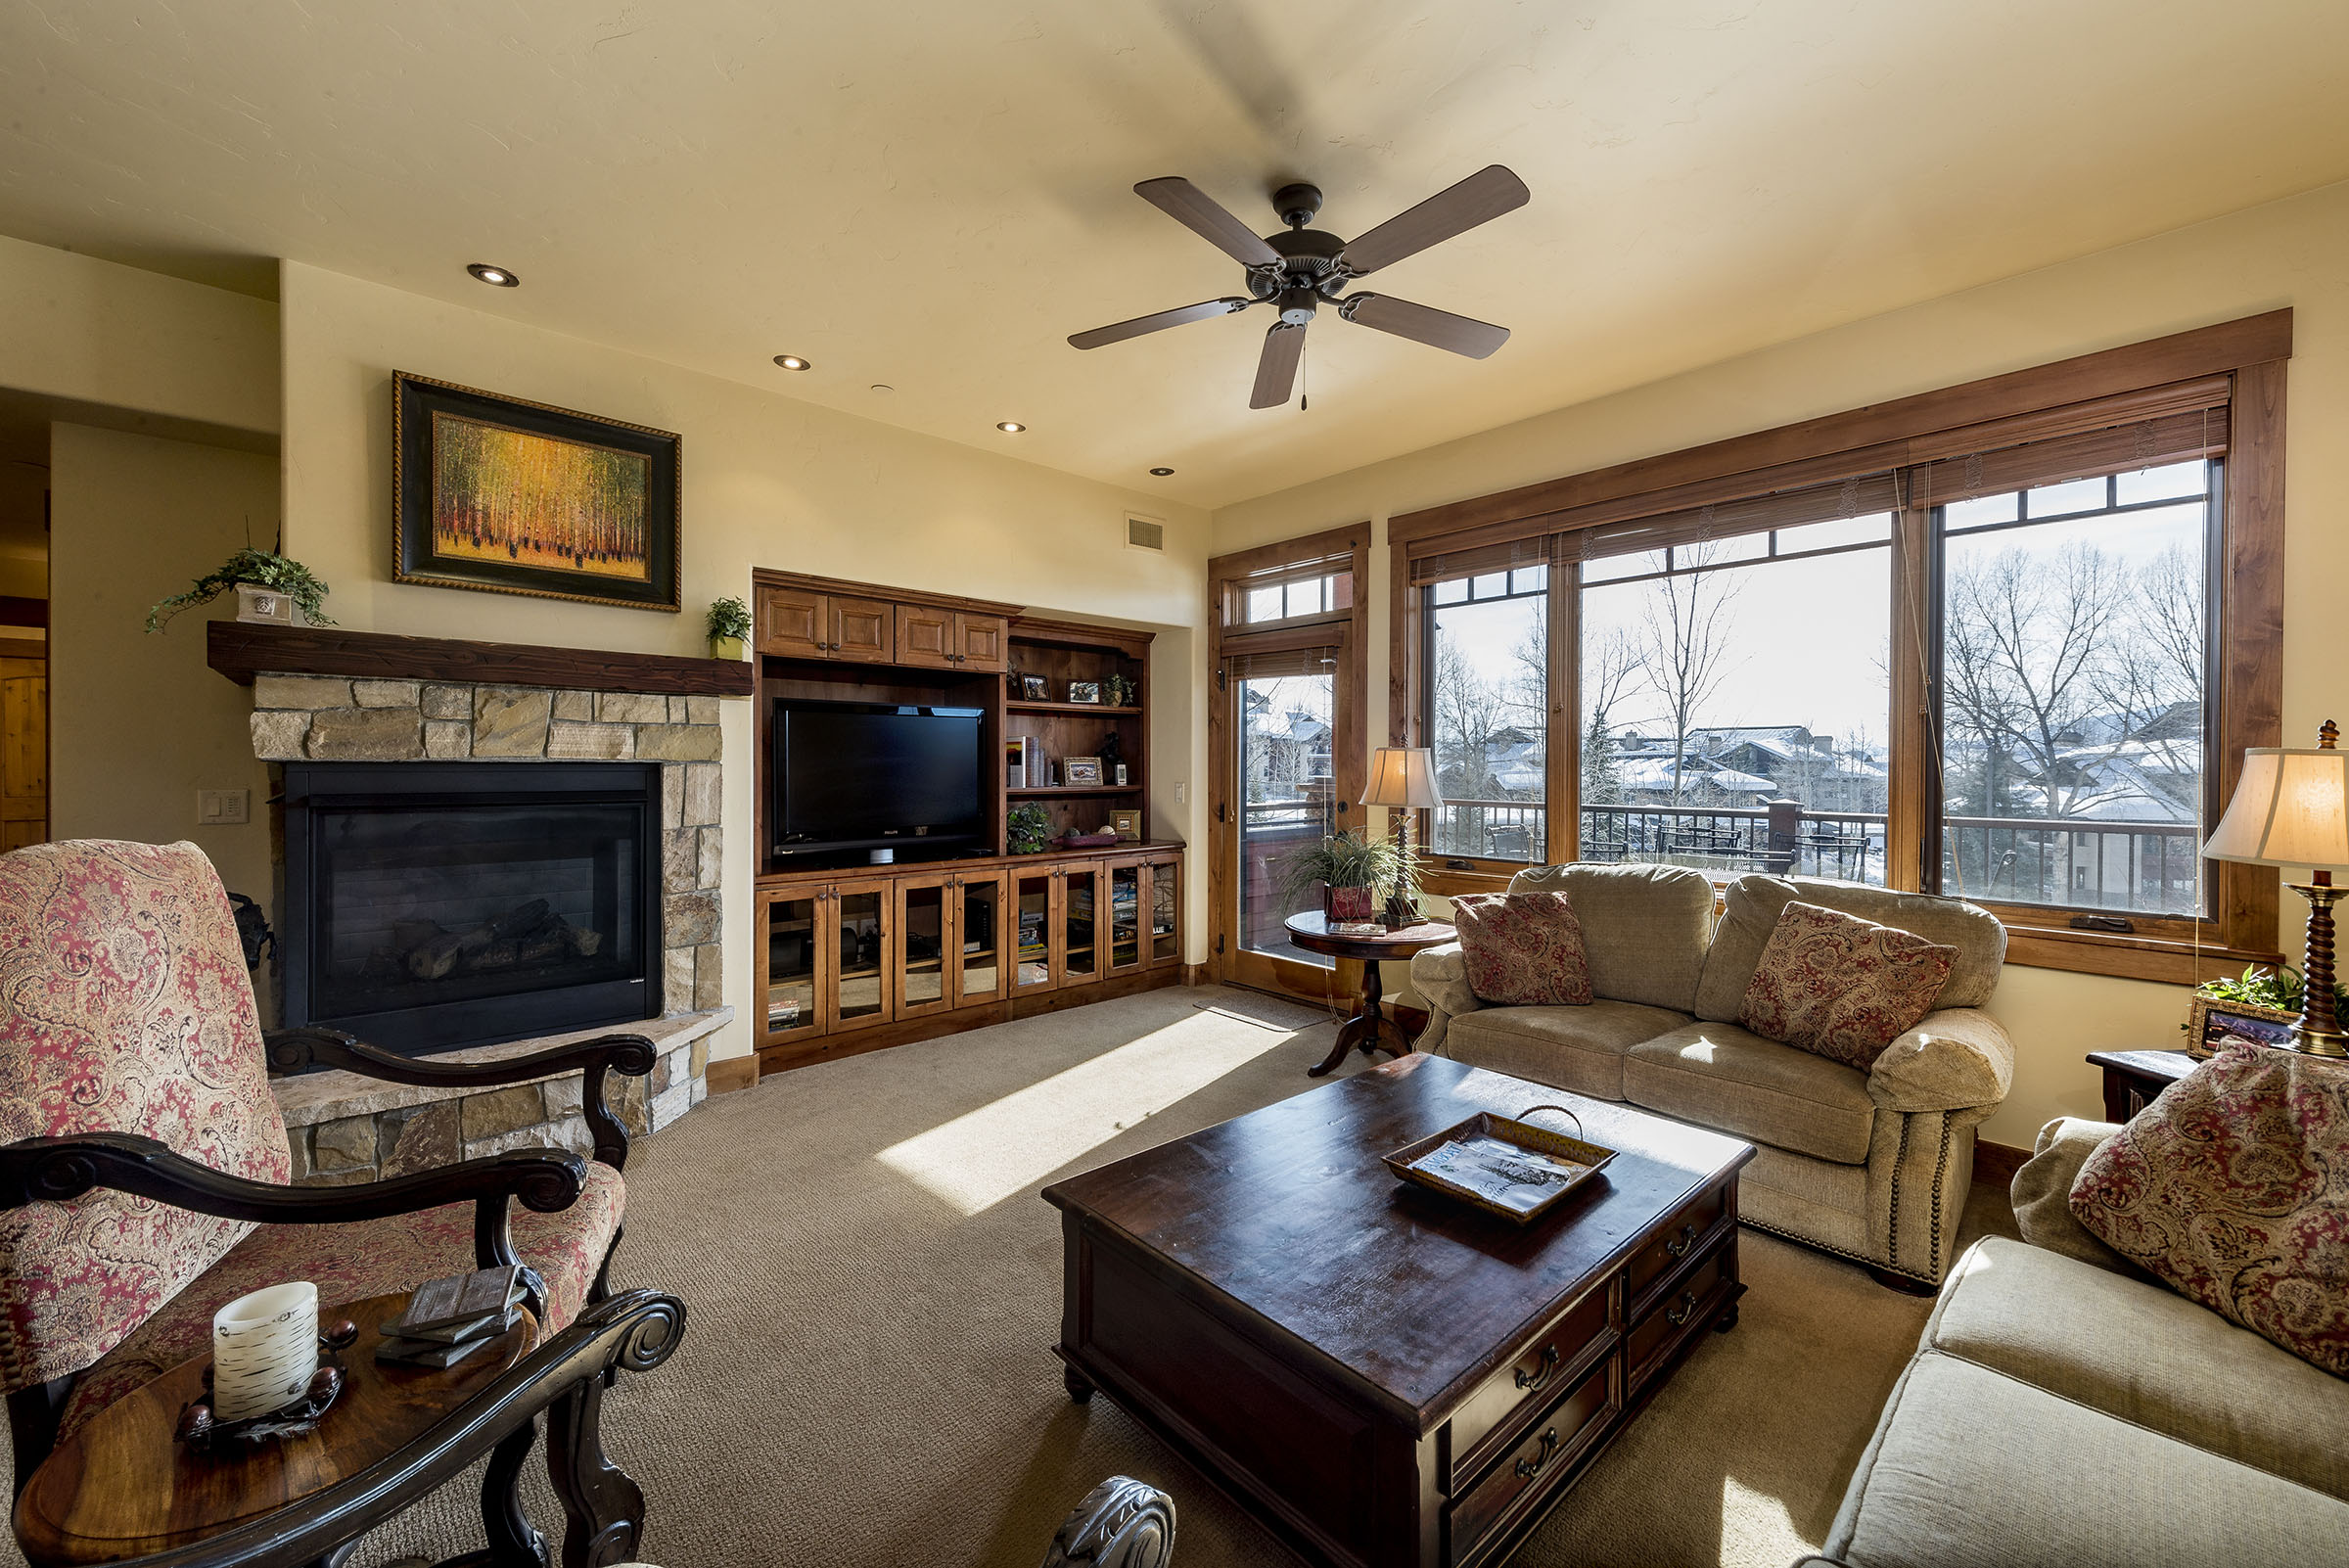 Condominium for Sale at Pampered Skier's Retreat 1800 Medicine Springs Drive #5102 Steamboat Springs, Colorado, 80487 United States